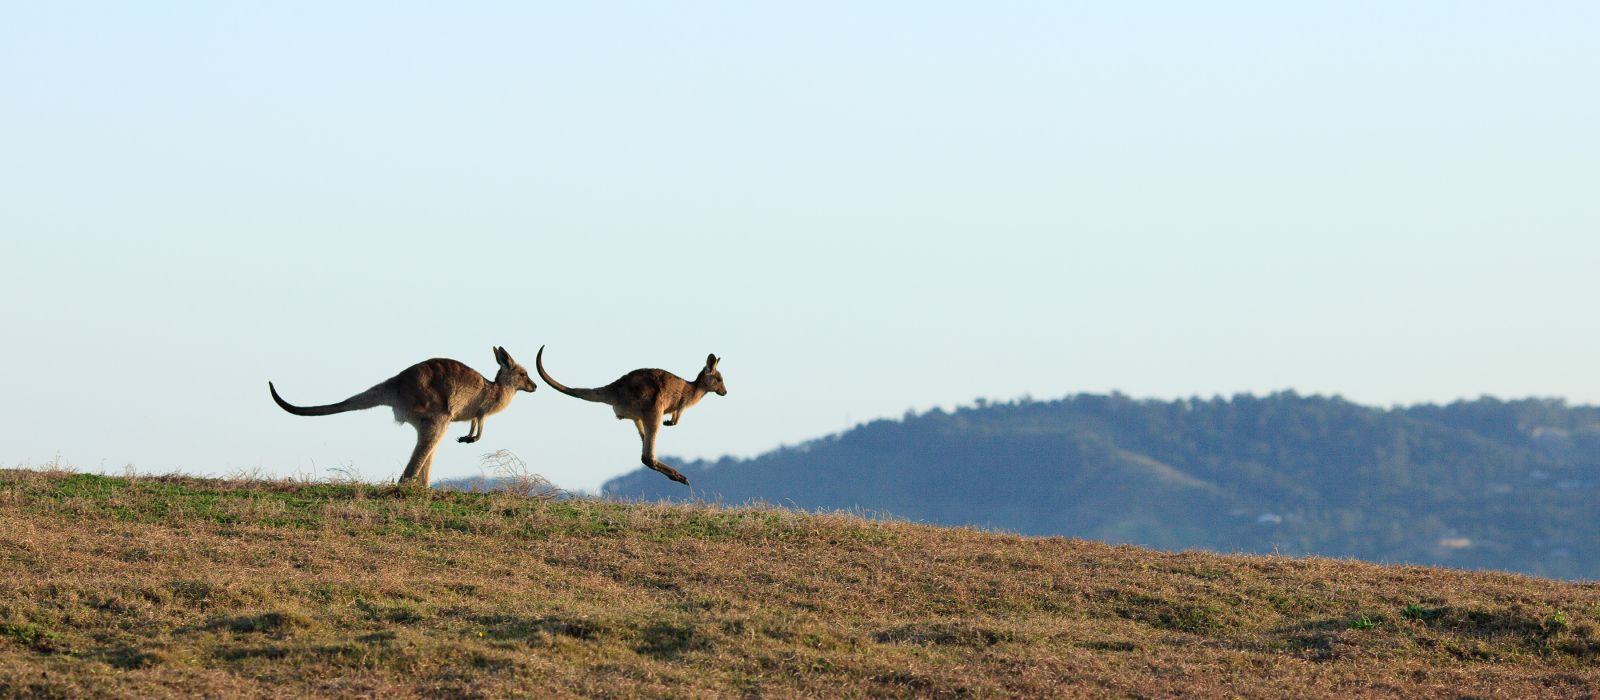 Kangaroos on the horizon, Emerald Beach, Australia